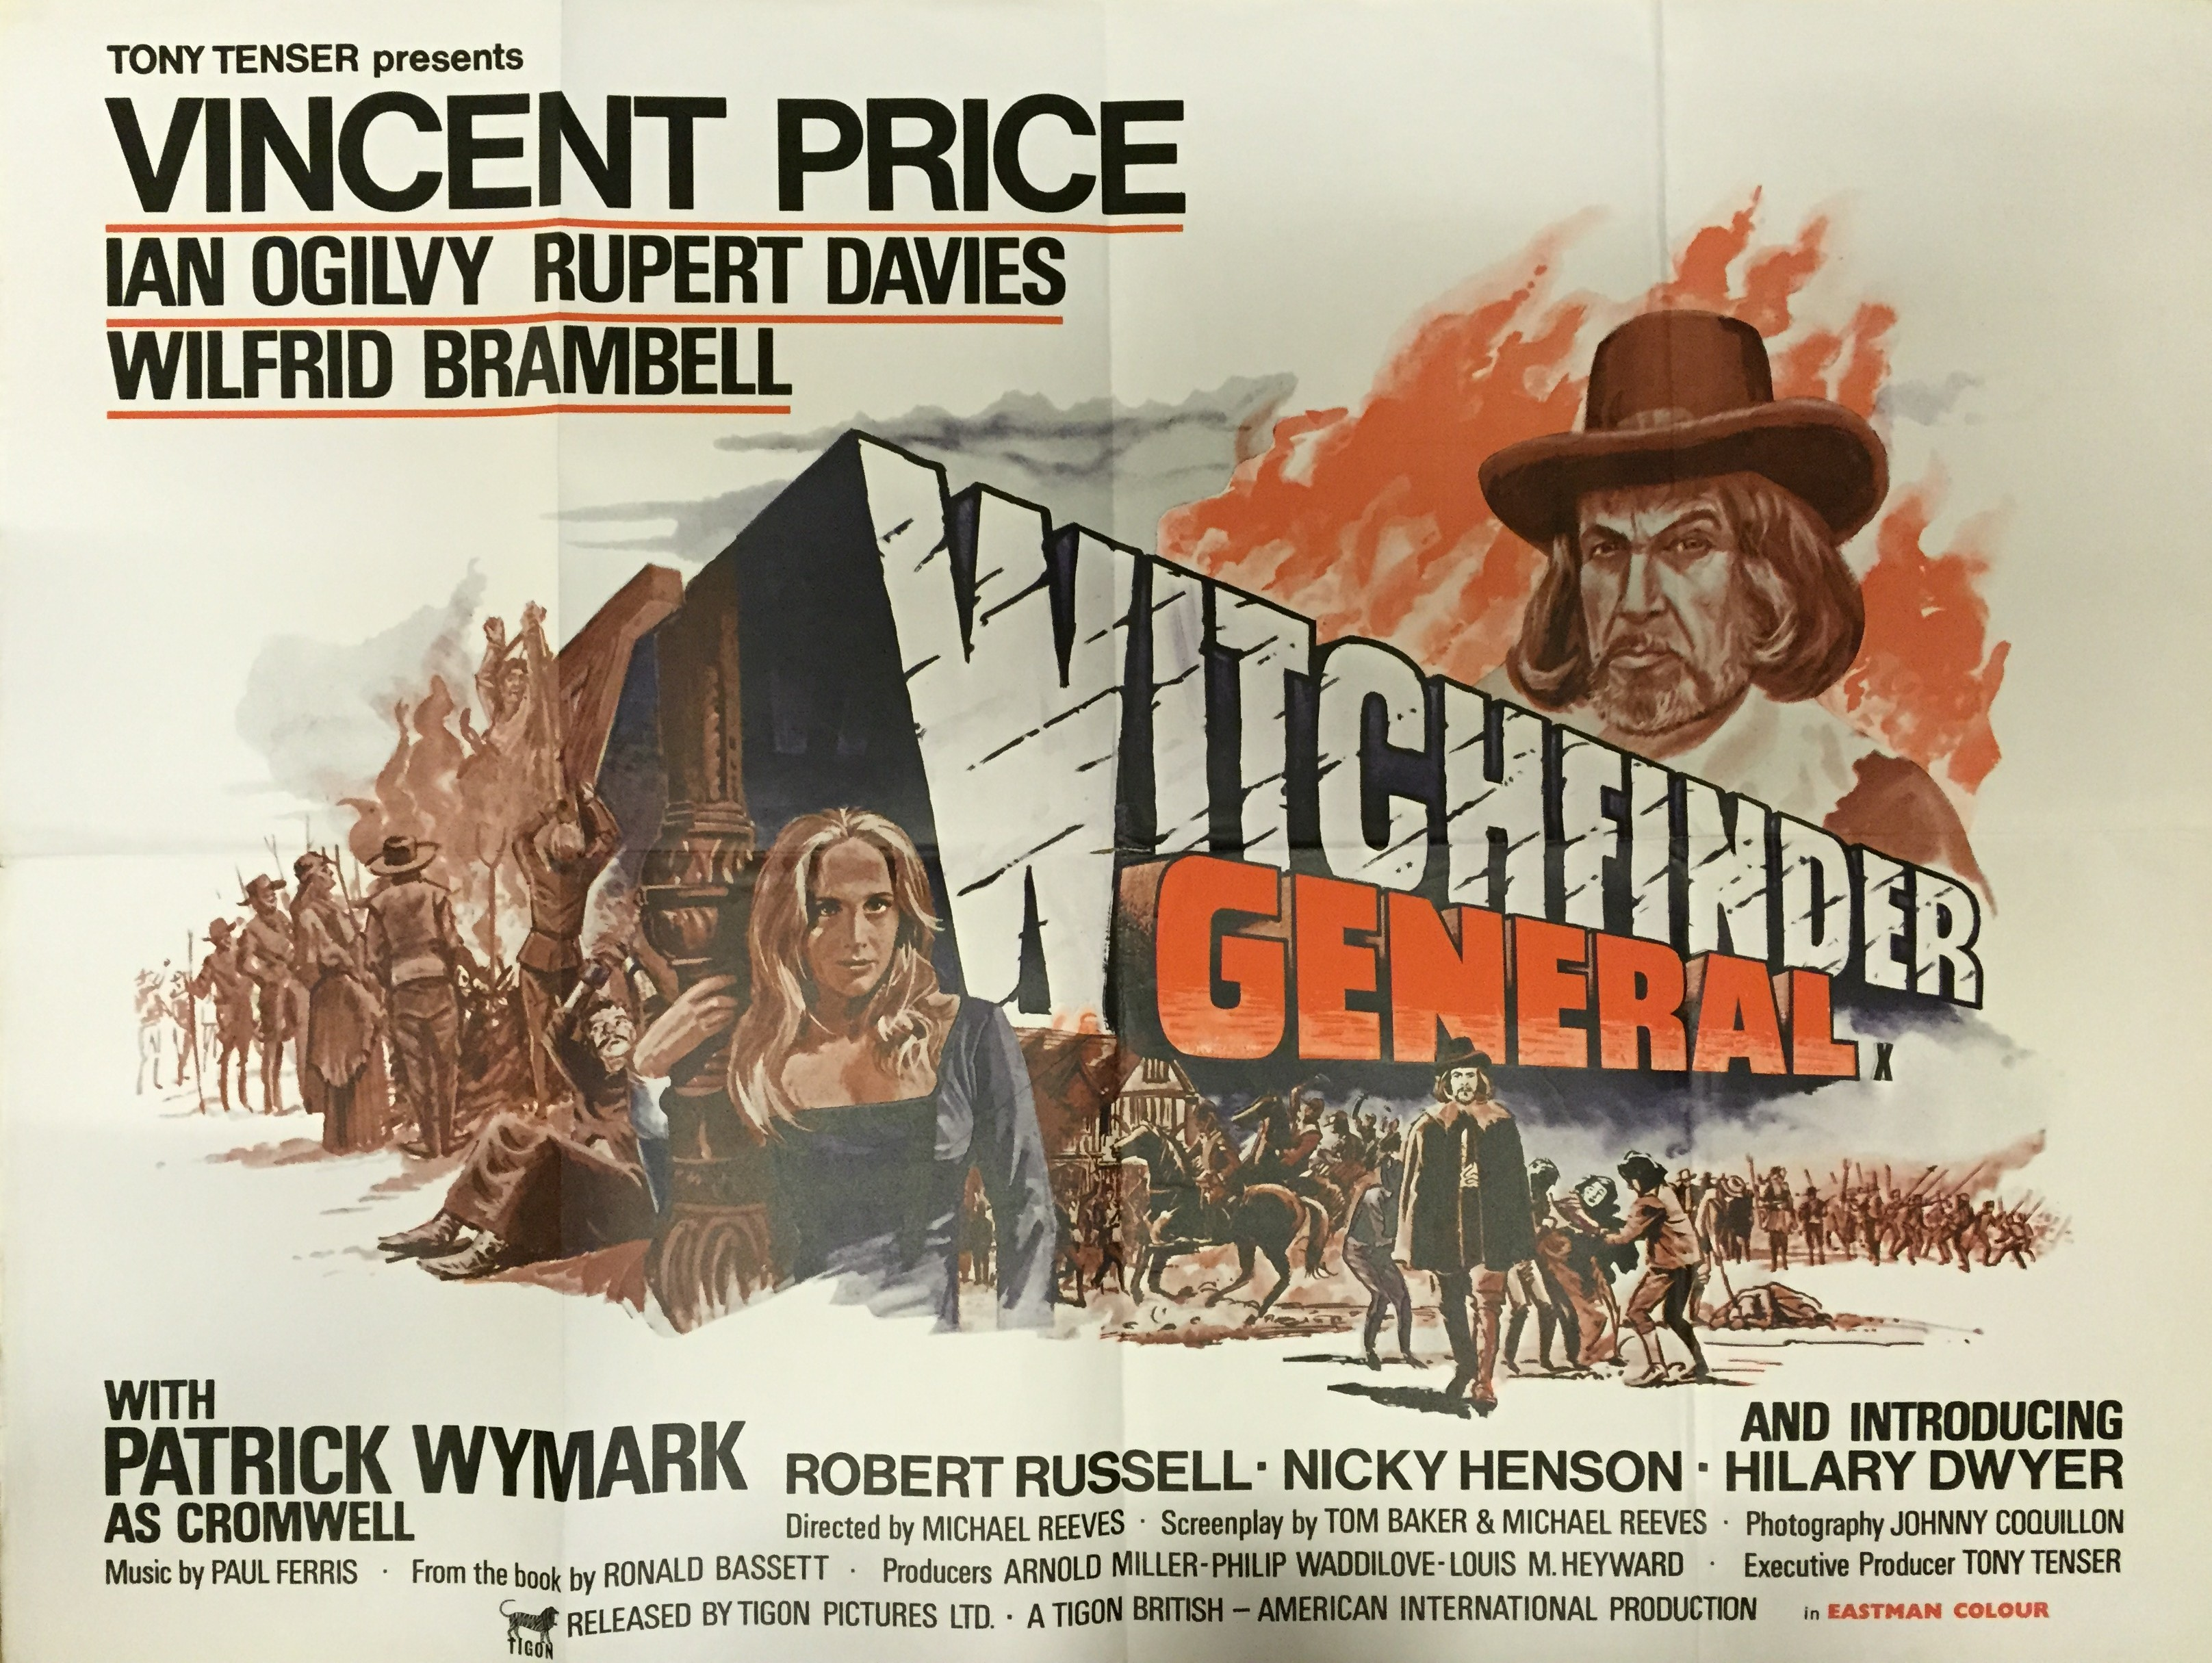 Michael may witchfinder general 1968 whos in it vincent price abbott and costello meet frankenstein the gene kelly three musketeers ian ogilvy return of the saint tv show fandeluxe